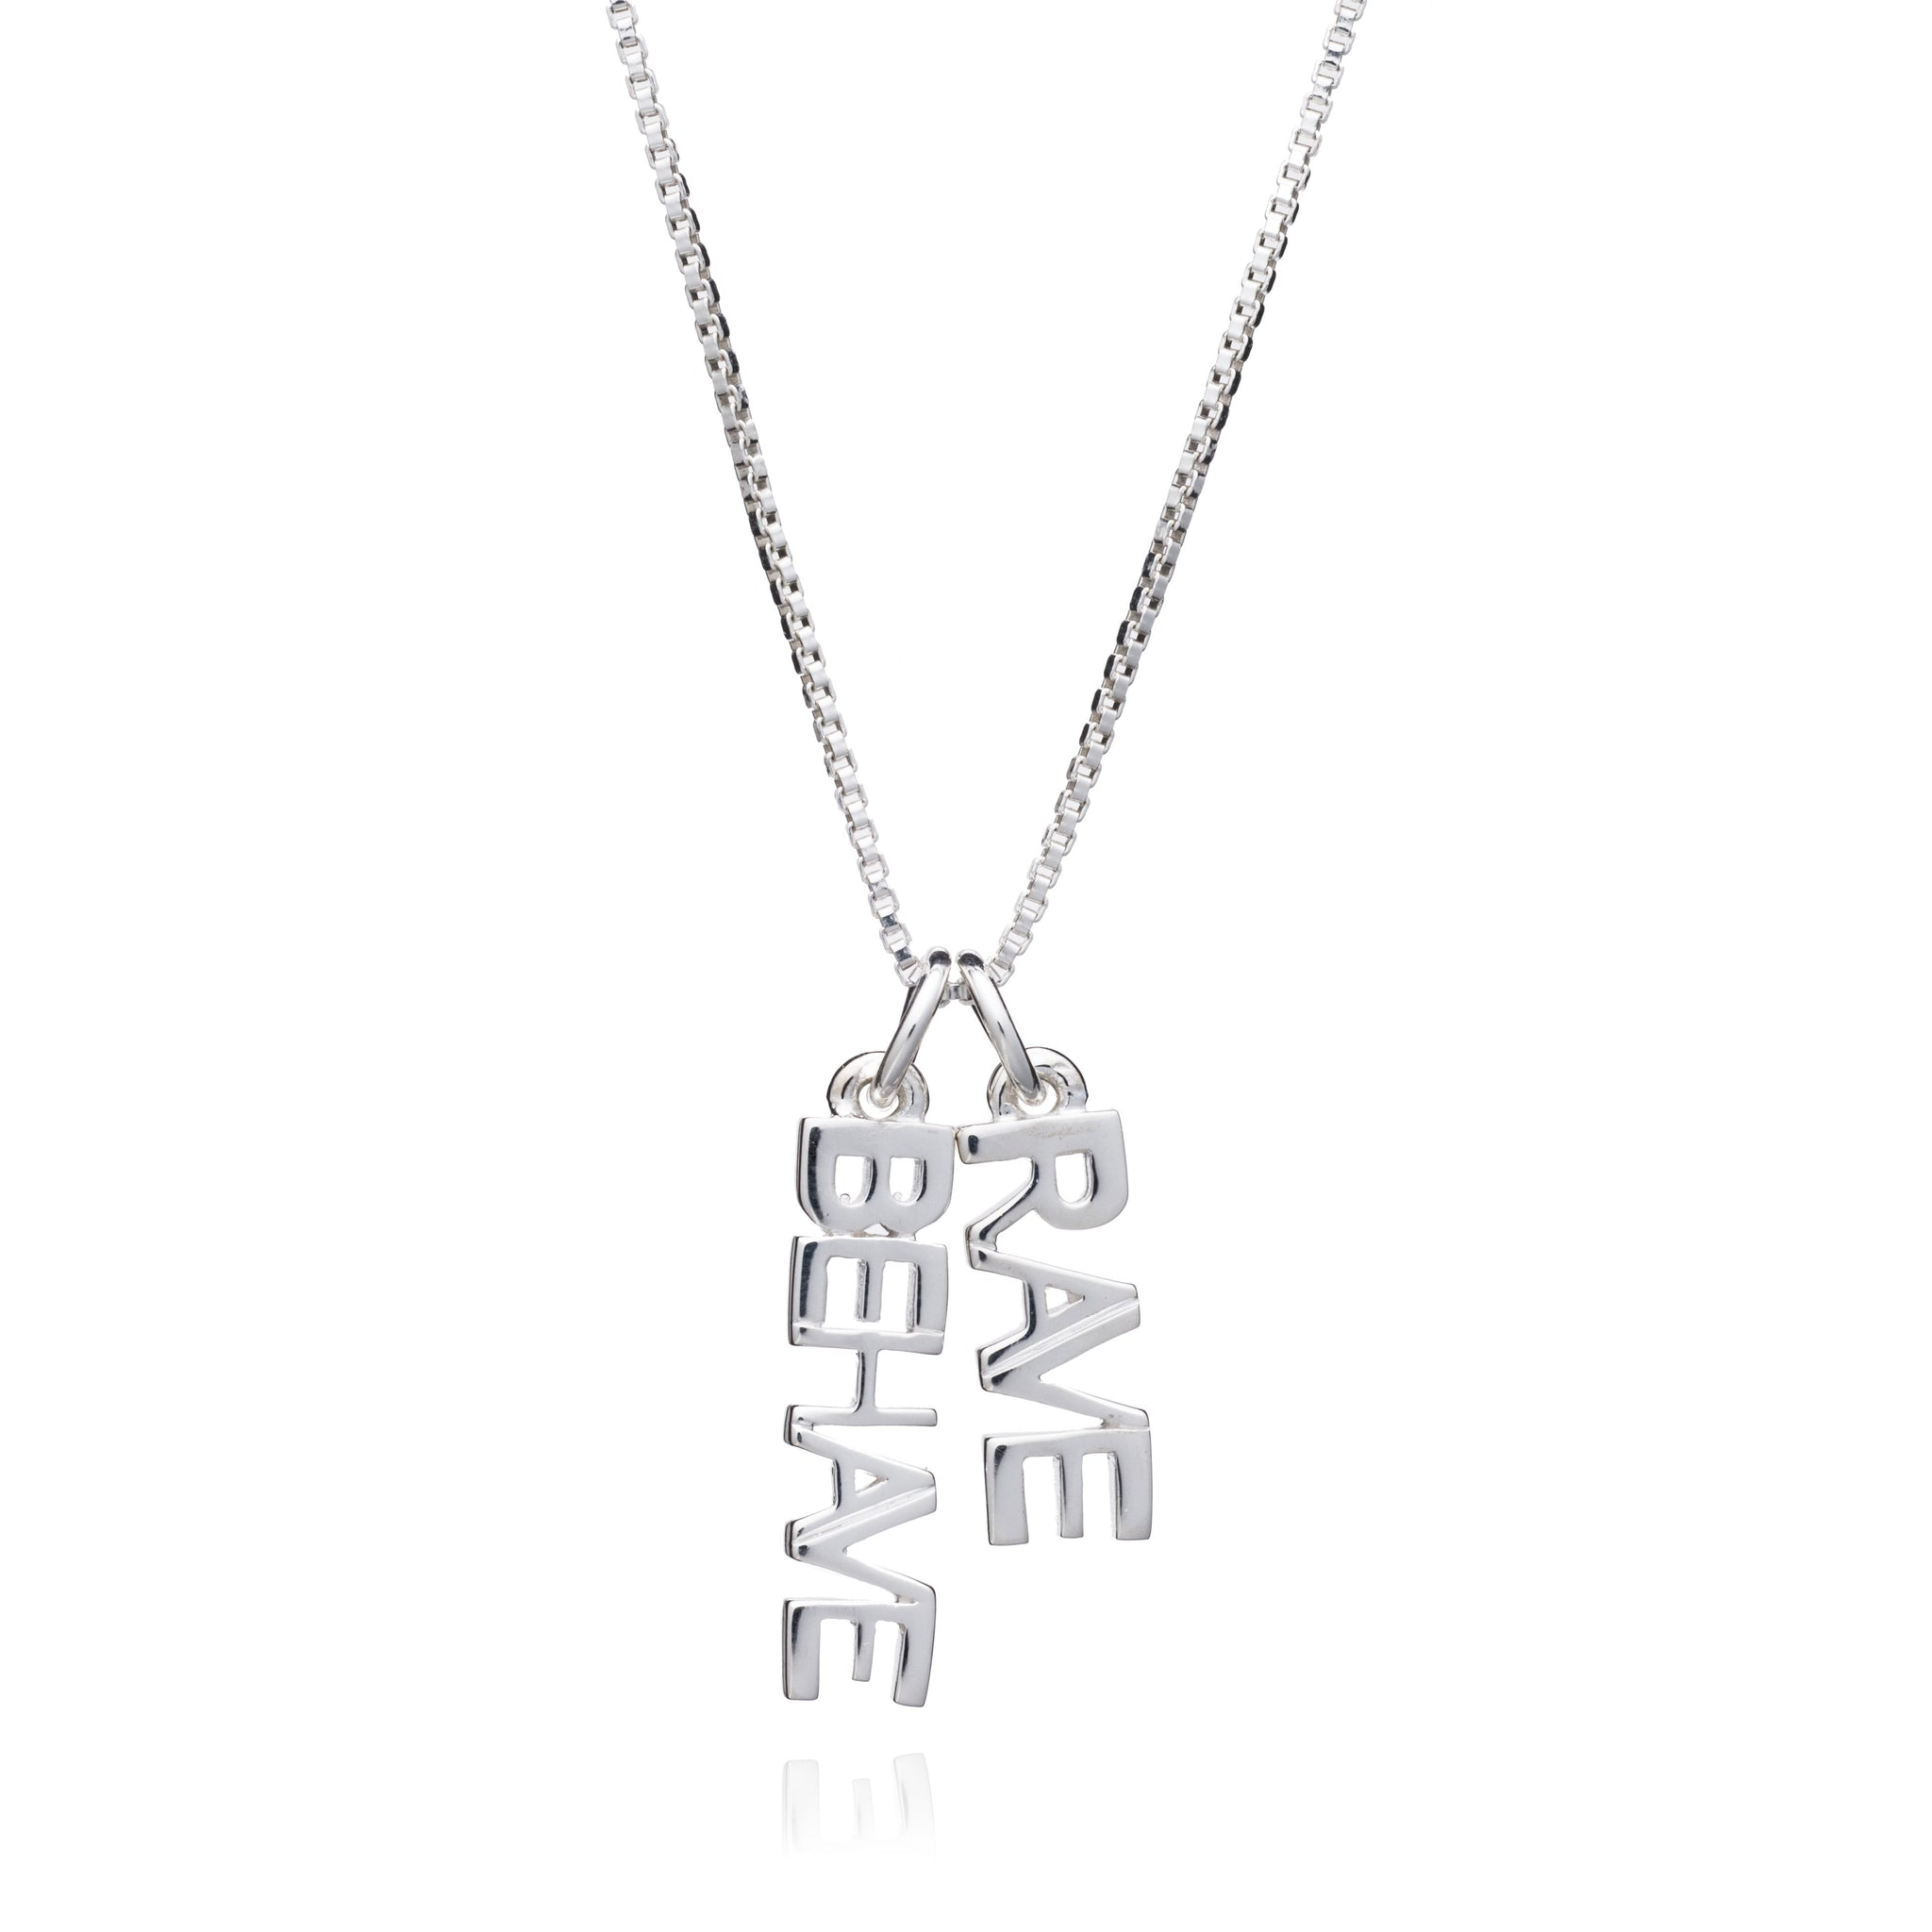 """Rave / Behave"" Charm Necklace - Silver"